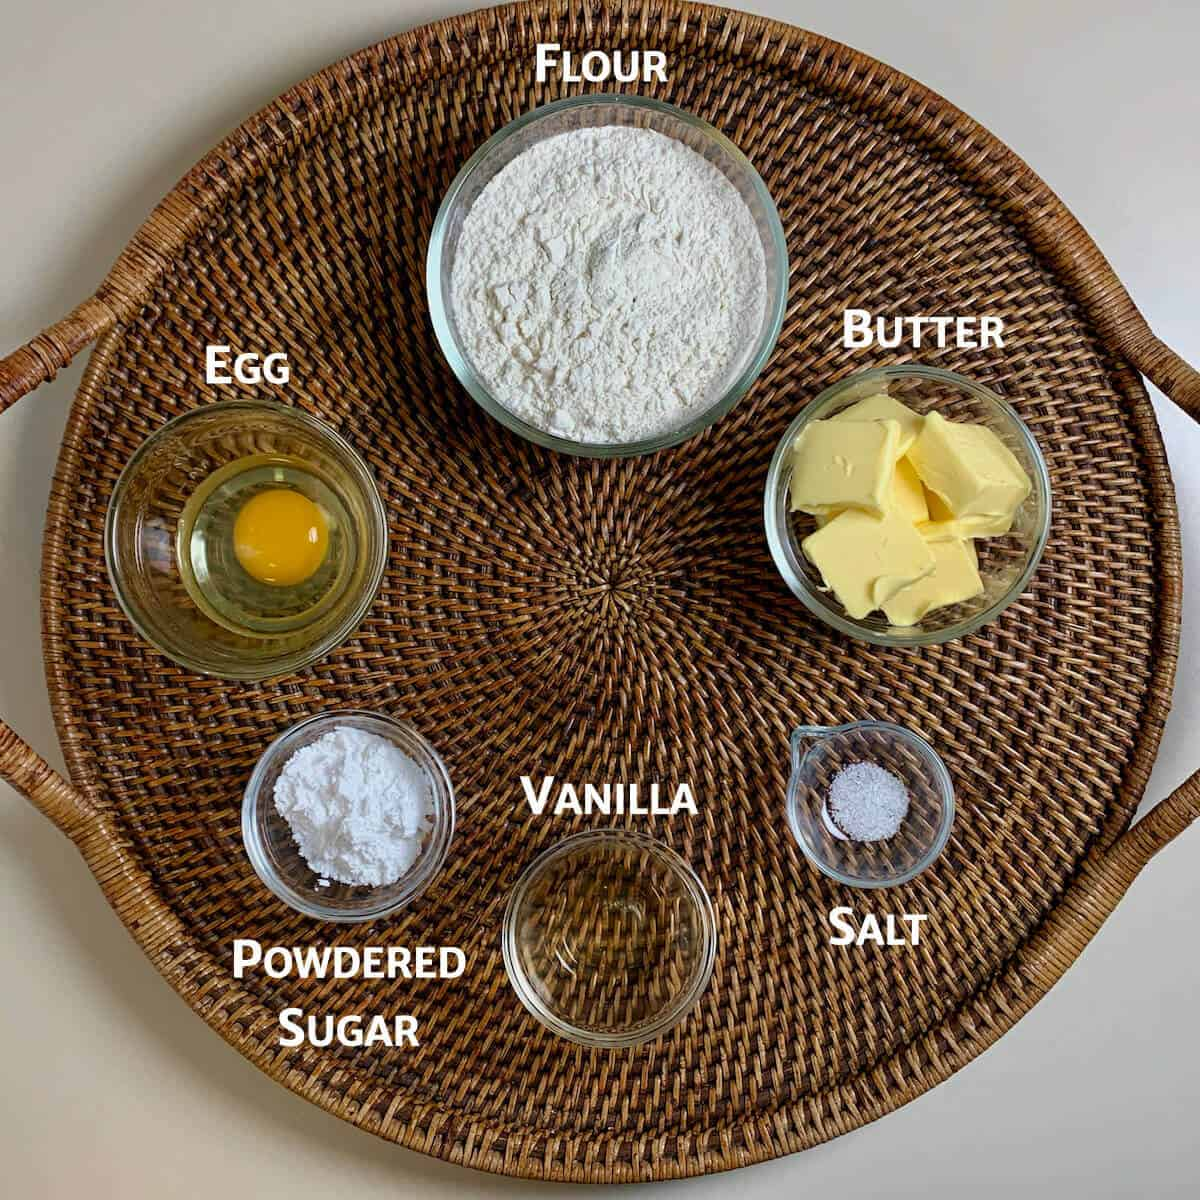 Shortcrust pastry ingredients on a wooden tray from overhead.